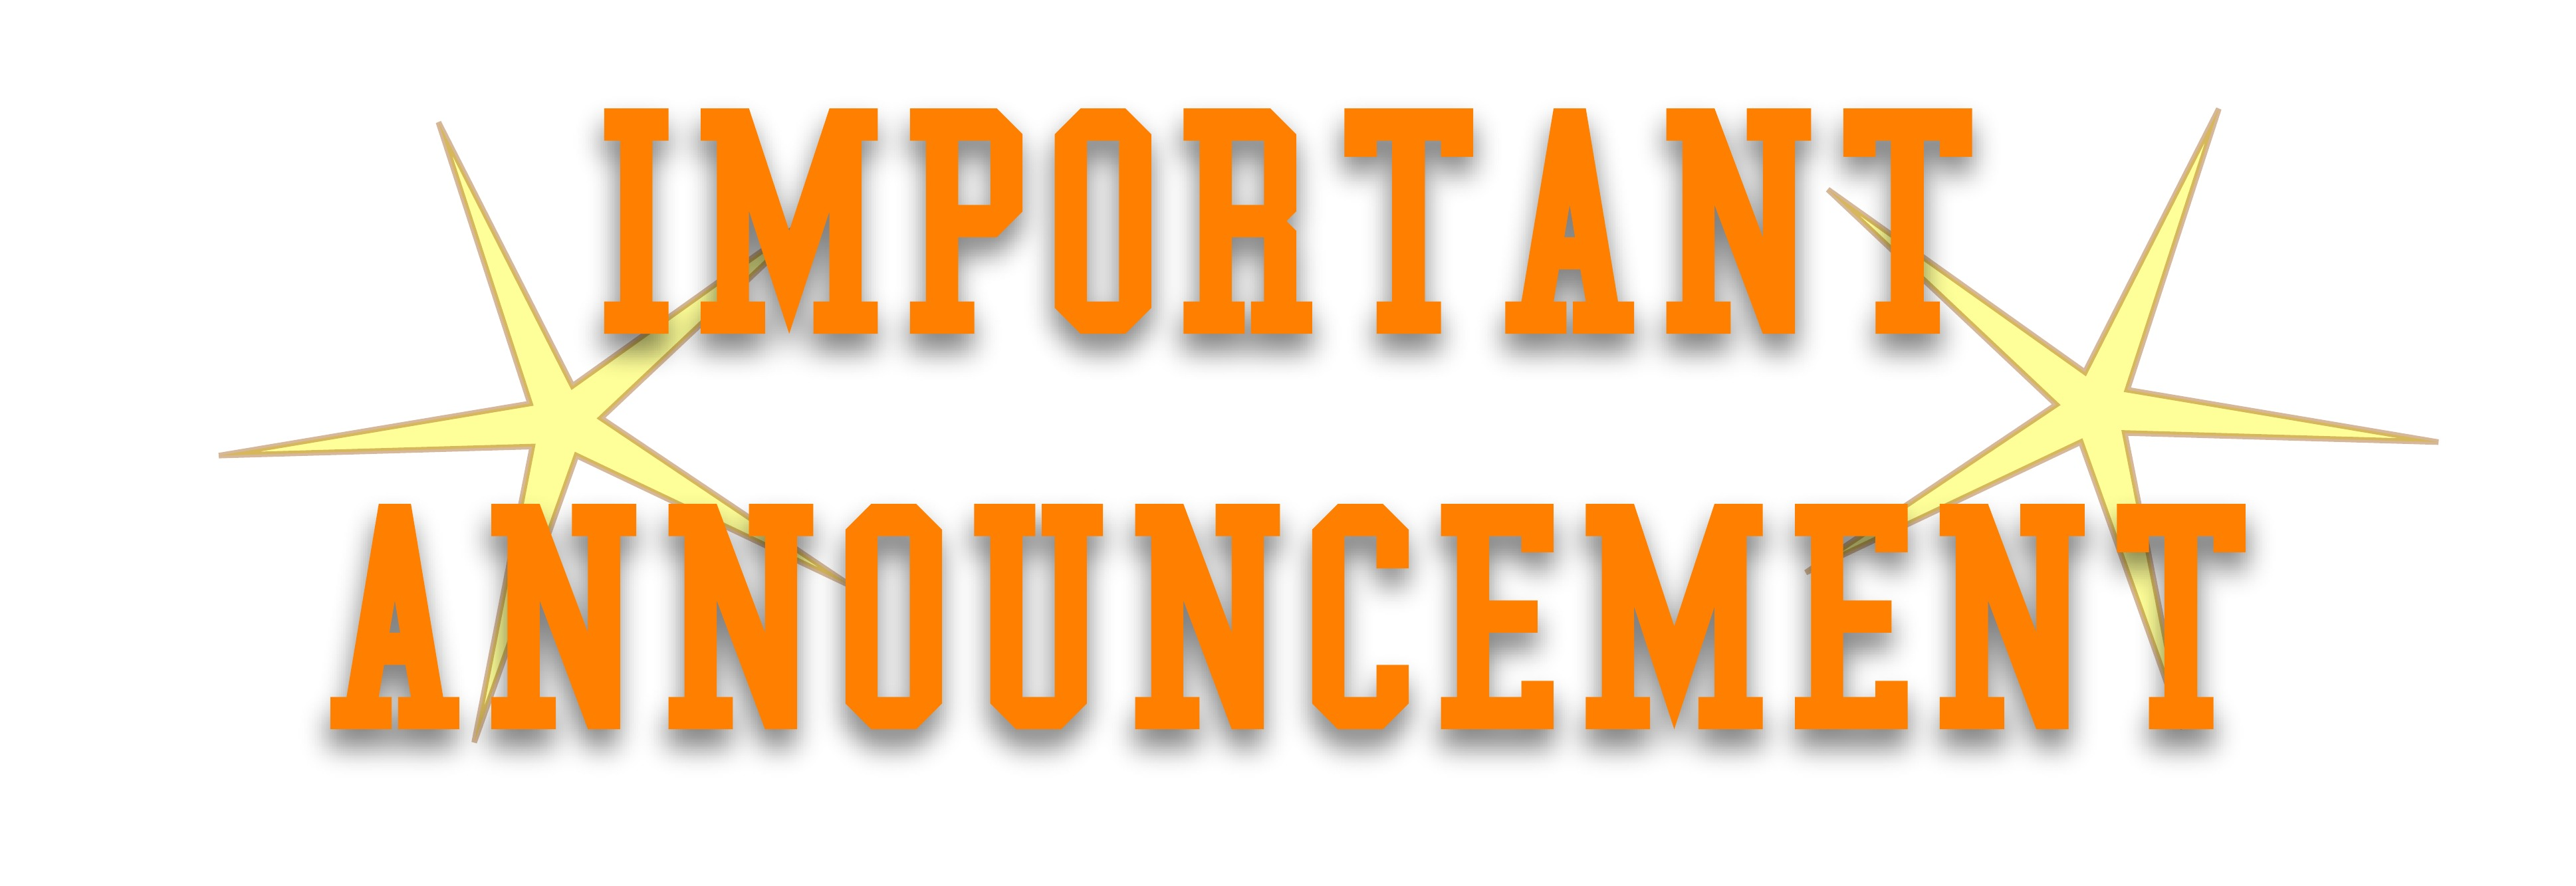 Announcement clipart announcement banner. Images of spacehero club